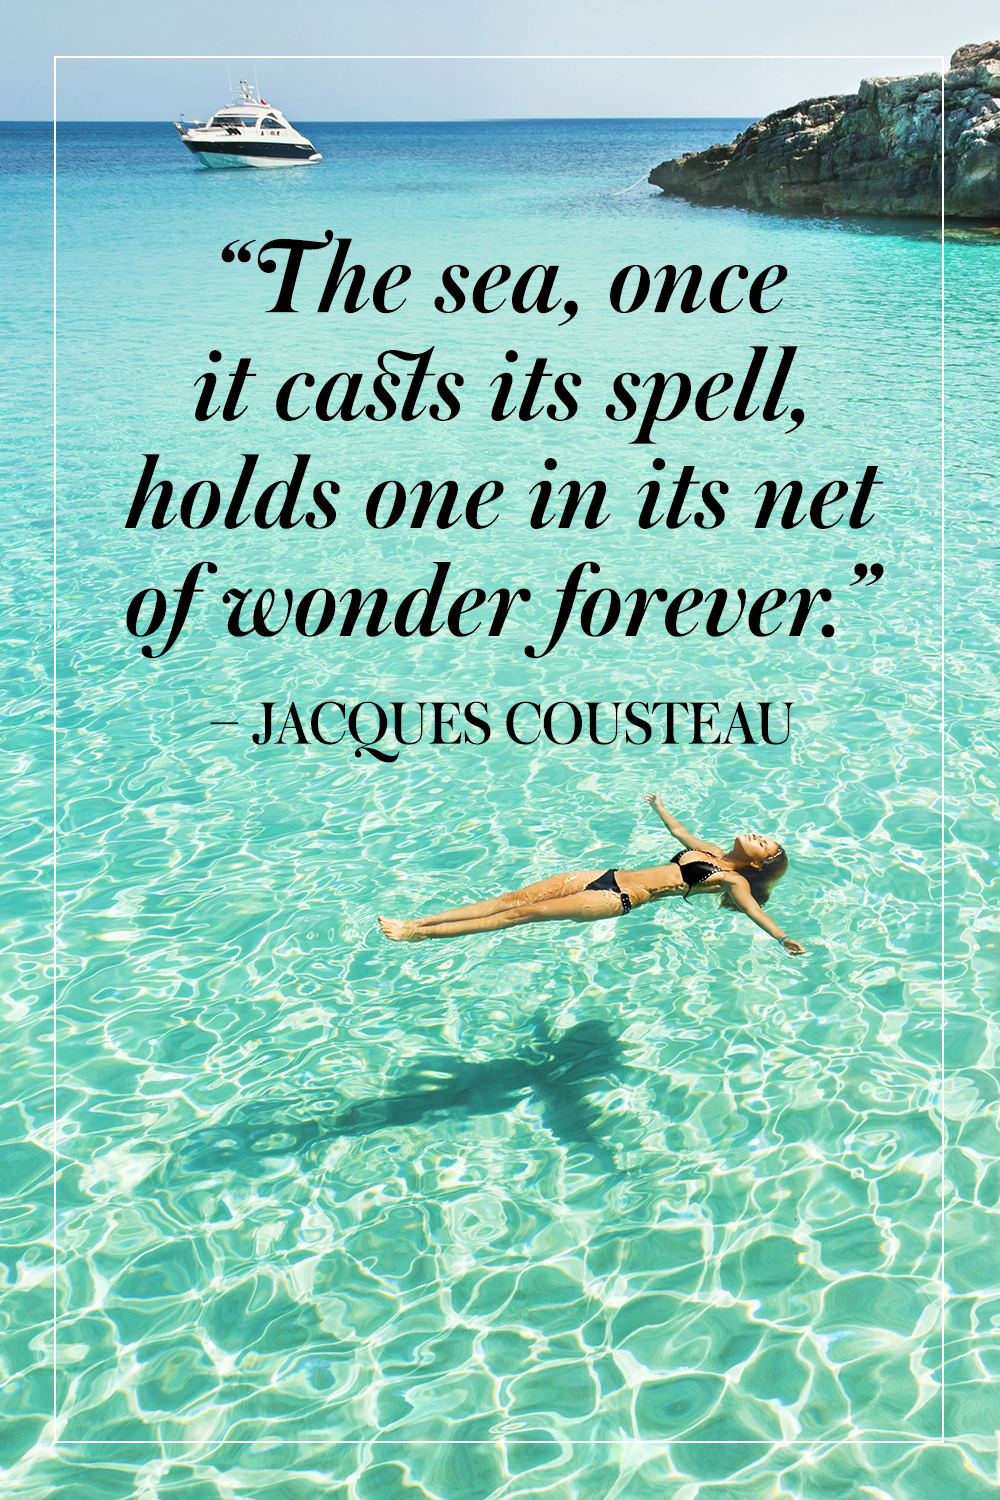 Best Quotes About The Ocean. QuotesGram